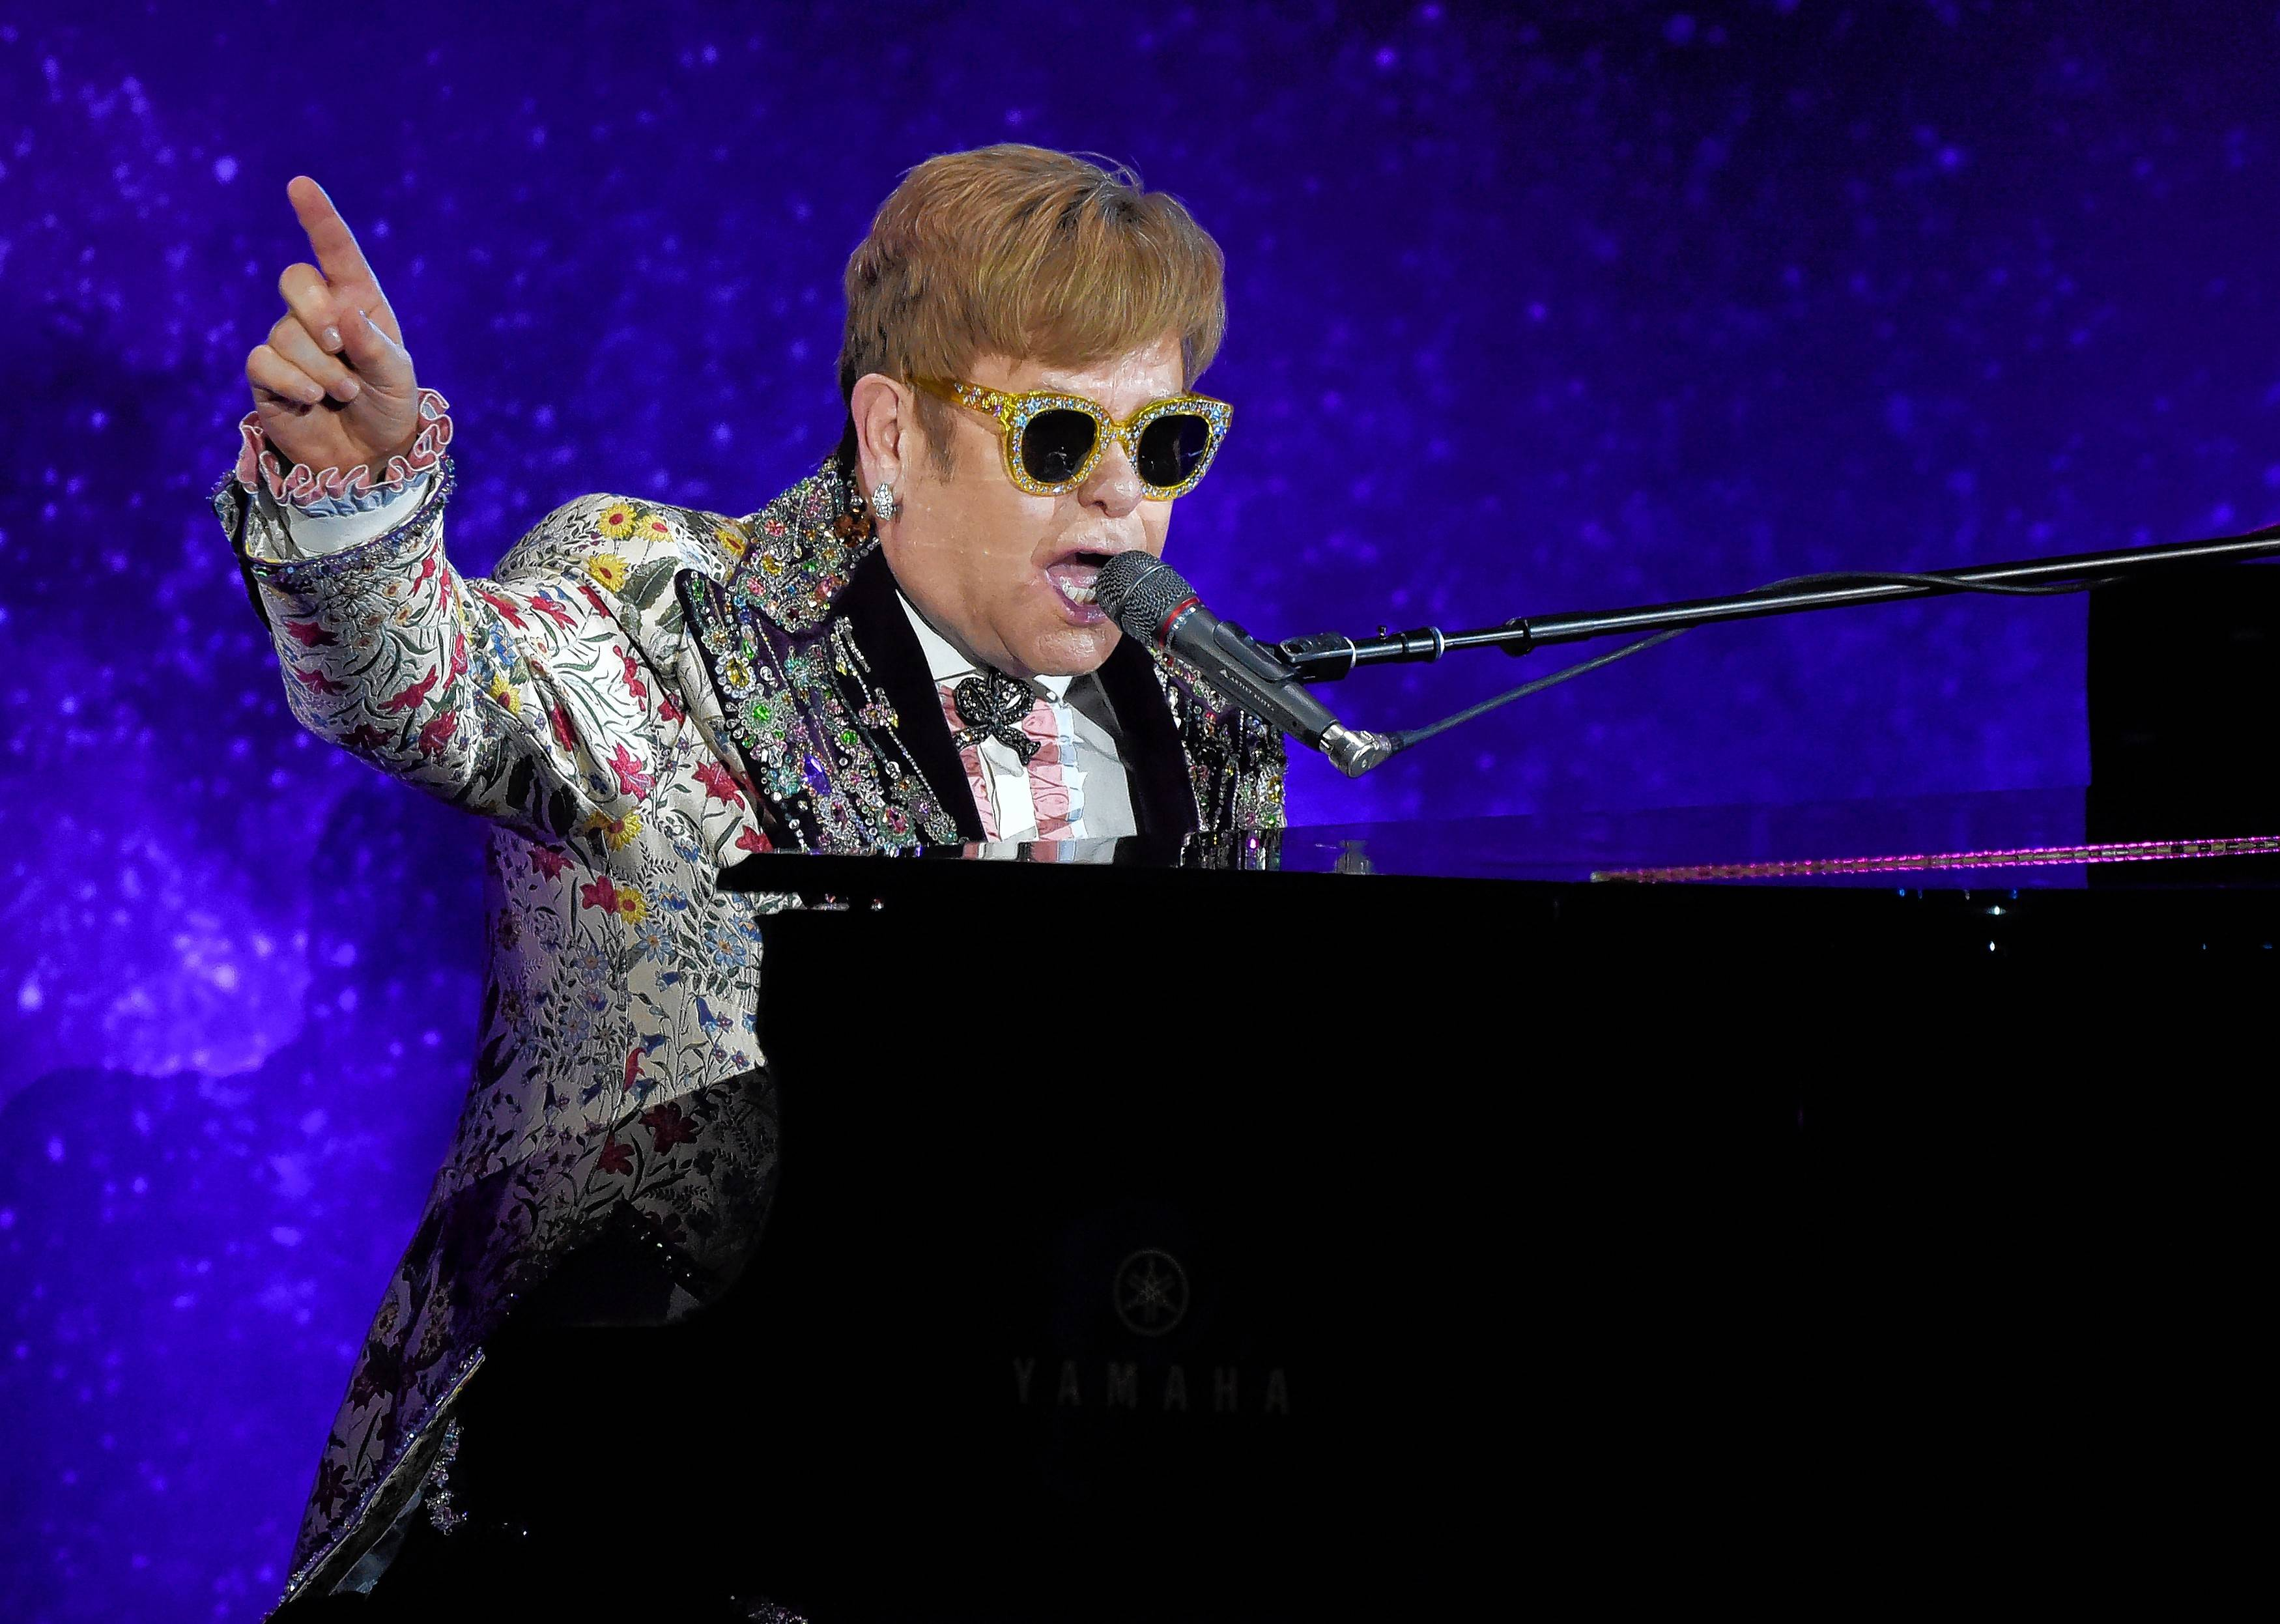 Elton John's final world tour will make two stops in the area. He plays Chicago's United Center on Oct. 26 and 27 and Rosemont's Allstate Arena on Feb. 15 and 16, 2019.